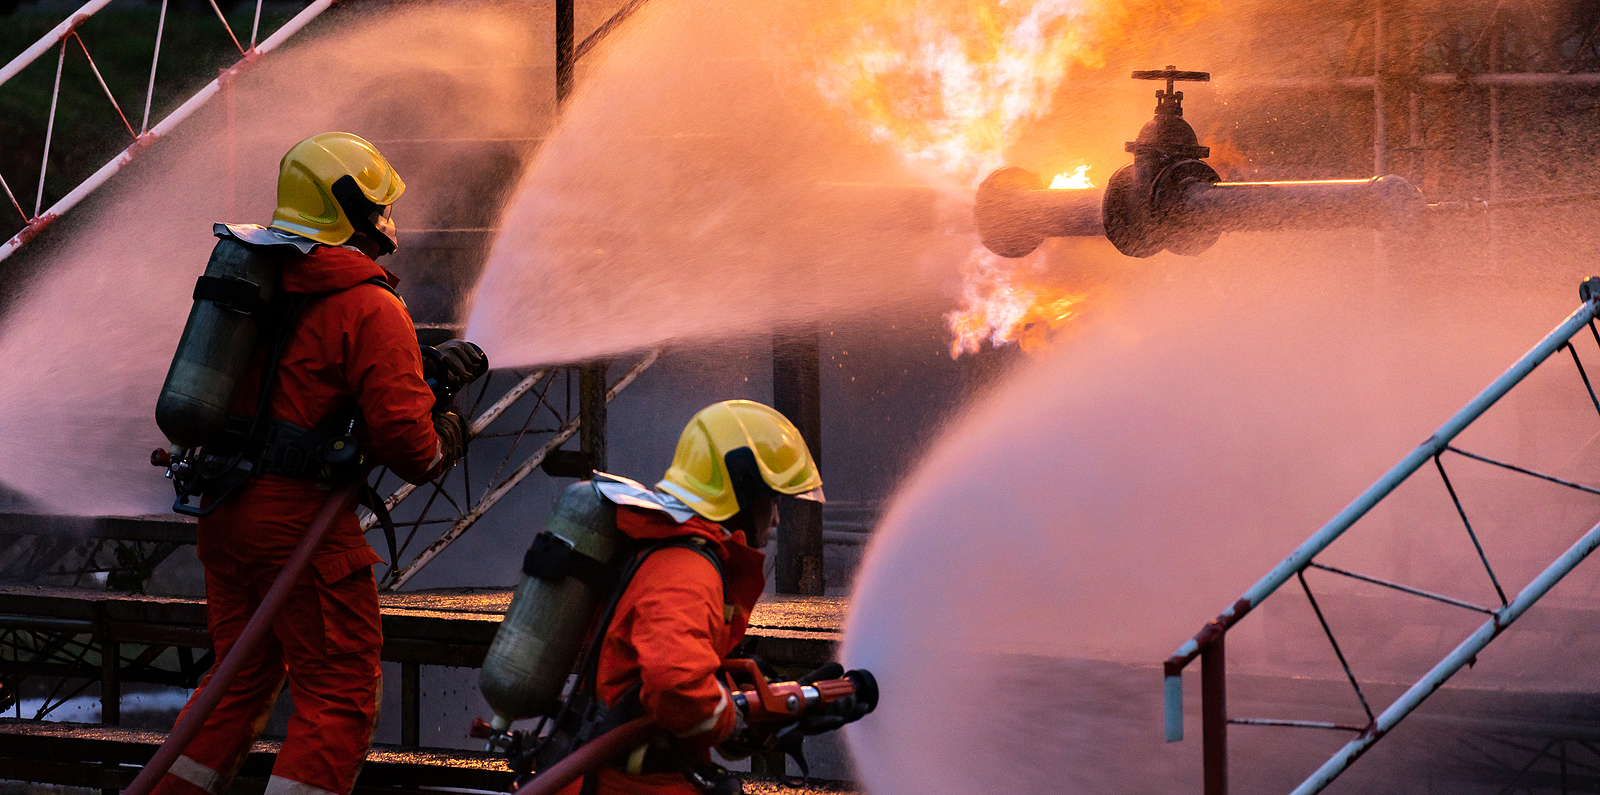 Fire Explosion Environmental Law Firefighter Team